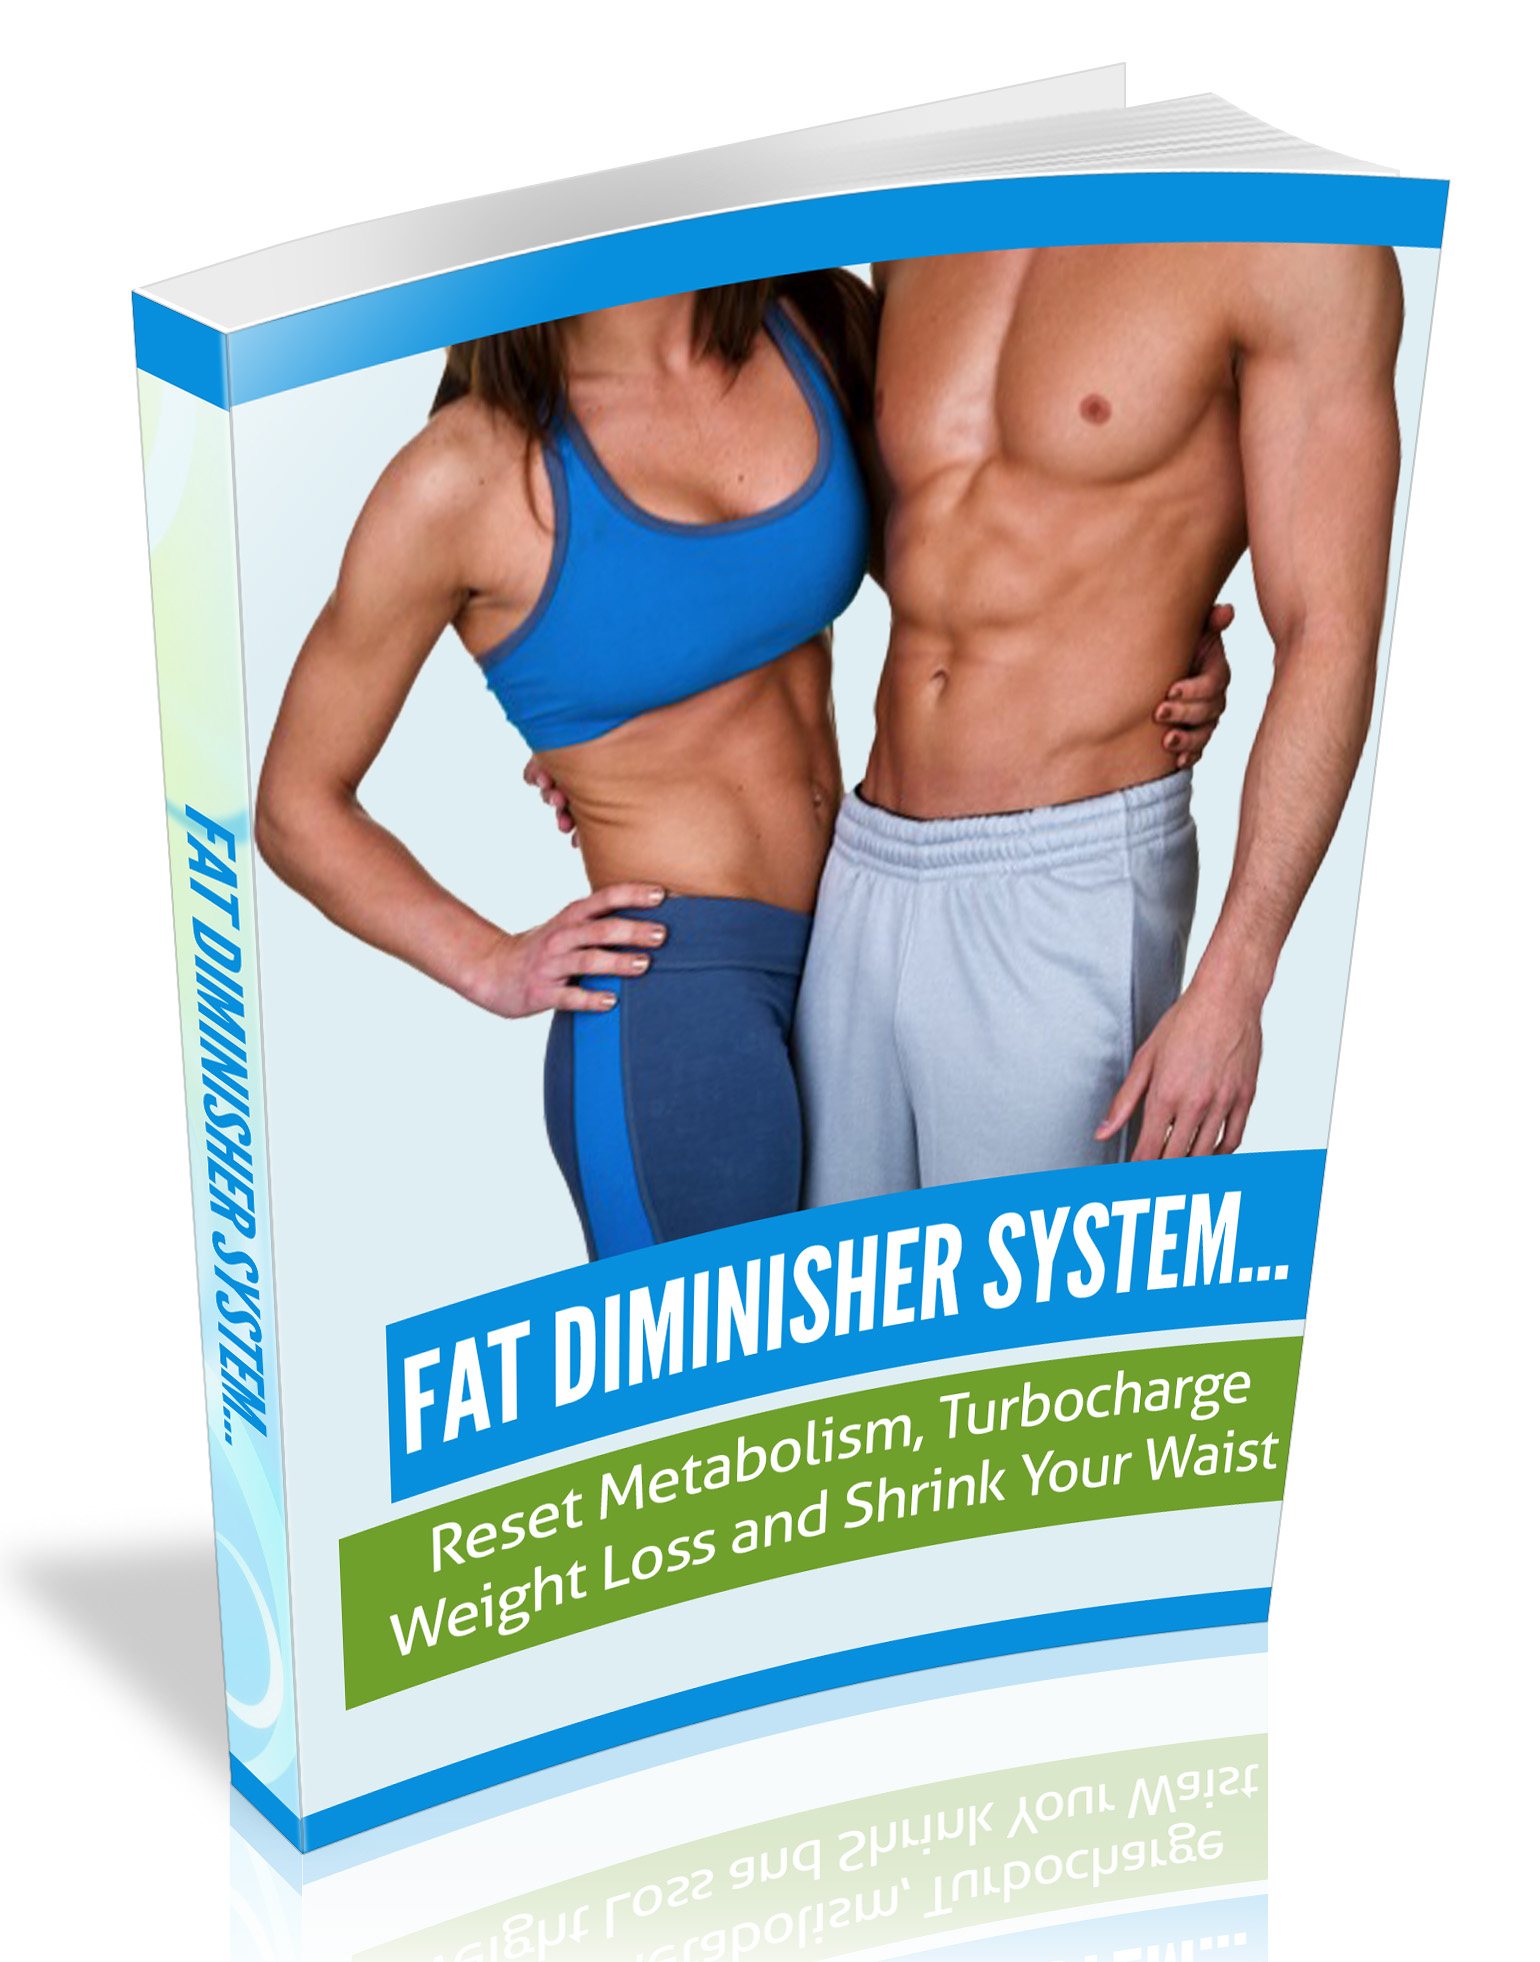 Fat Diminisher System Review-Is this Fat Diminisher System Big Scam or Not?